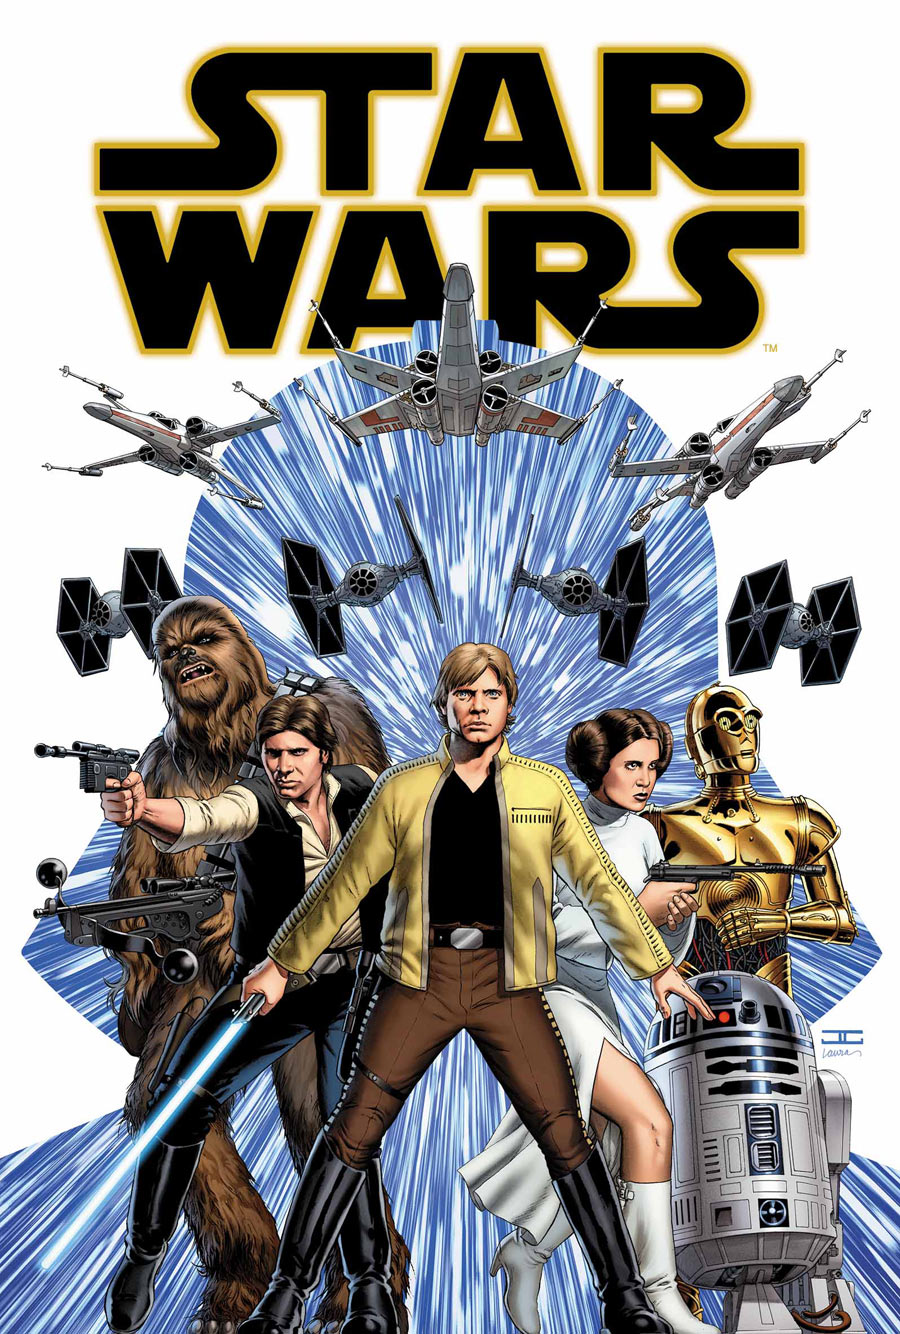 Star Wars comic book - 2015